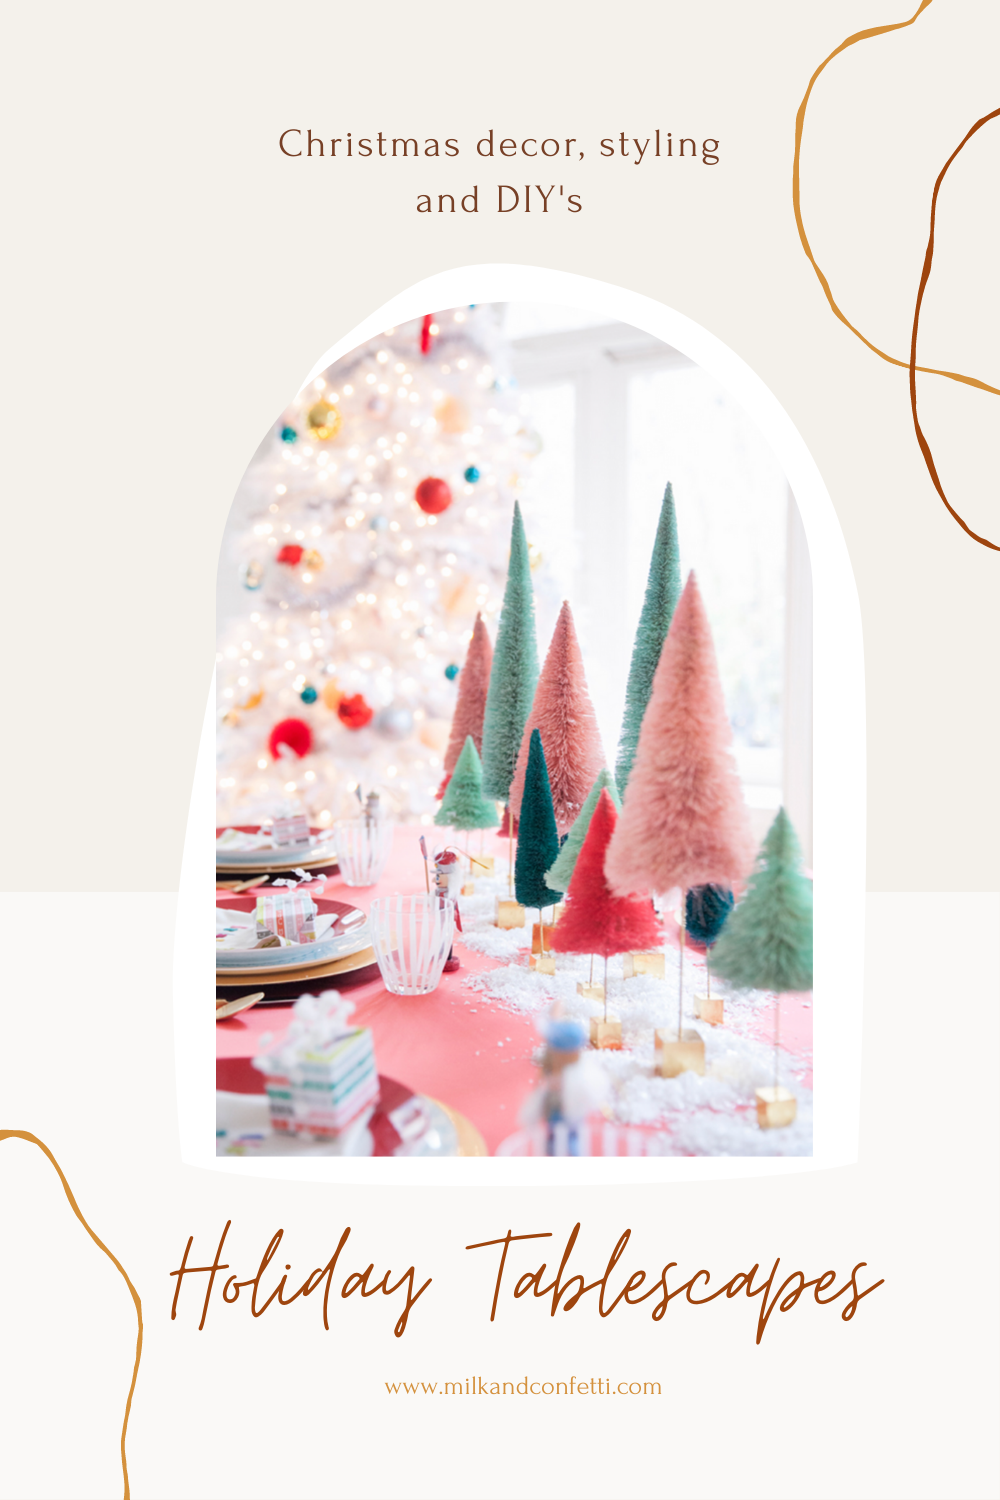 A whimsical Christmas tablescape set up with a red tablecloth, colourful bottlebrush trees and festive dinner wear on a dining room table during the holidays.